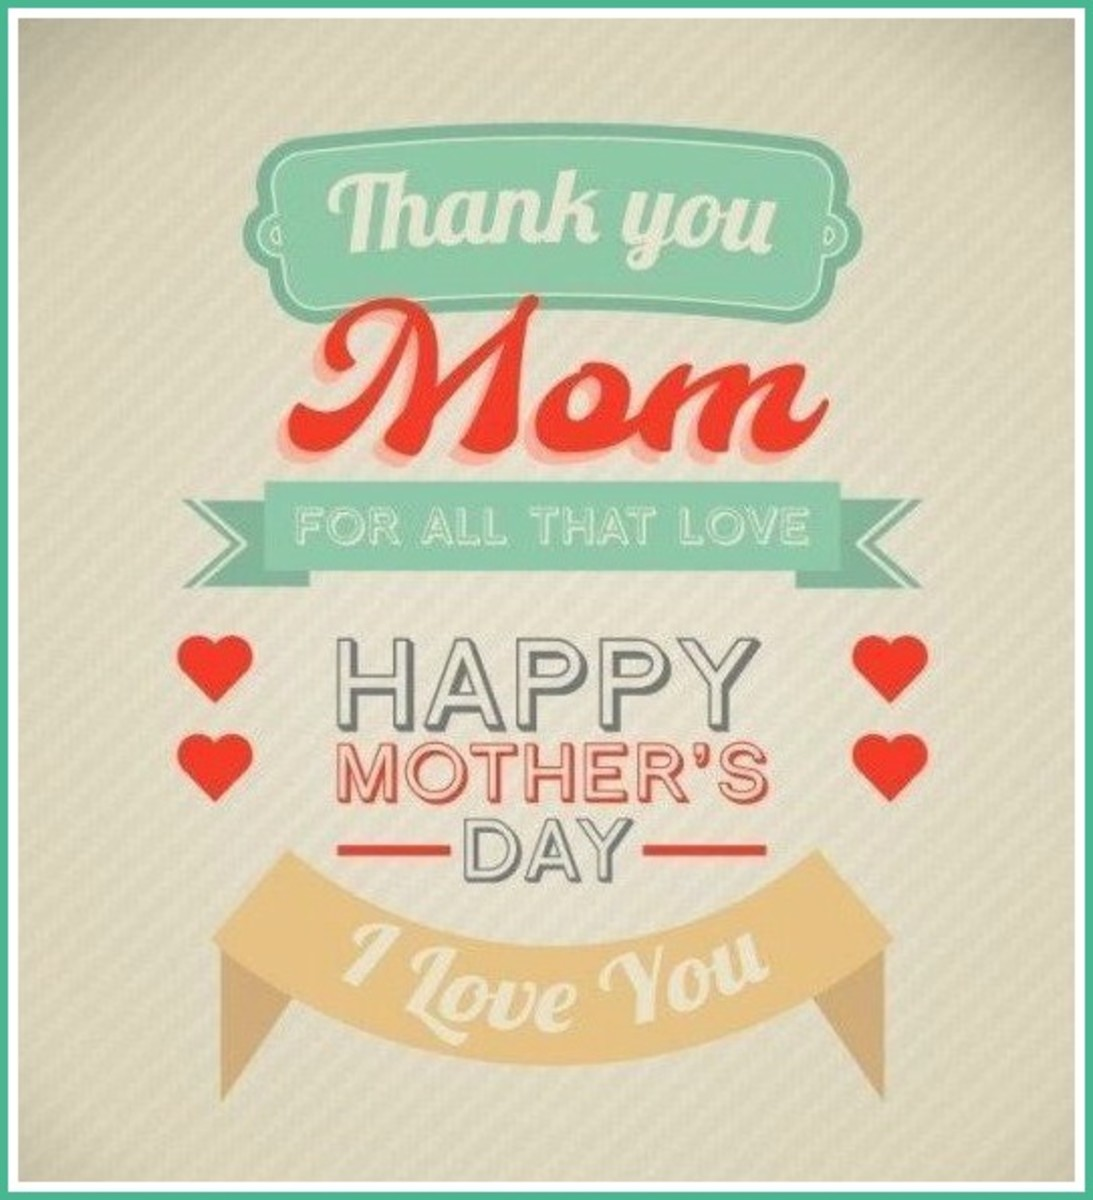 A 'Thank You' to Mom on Mother's Day